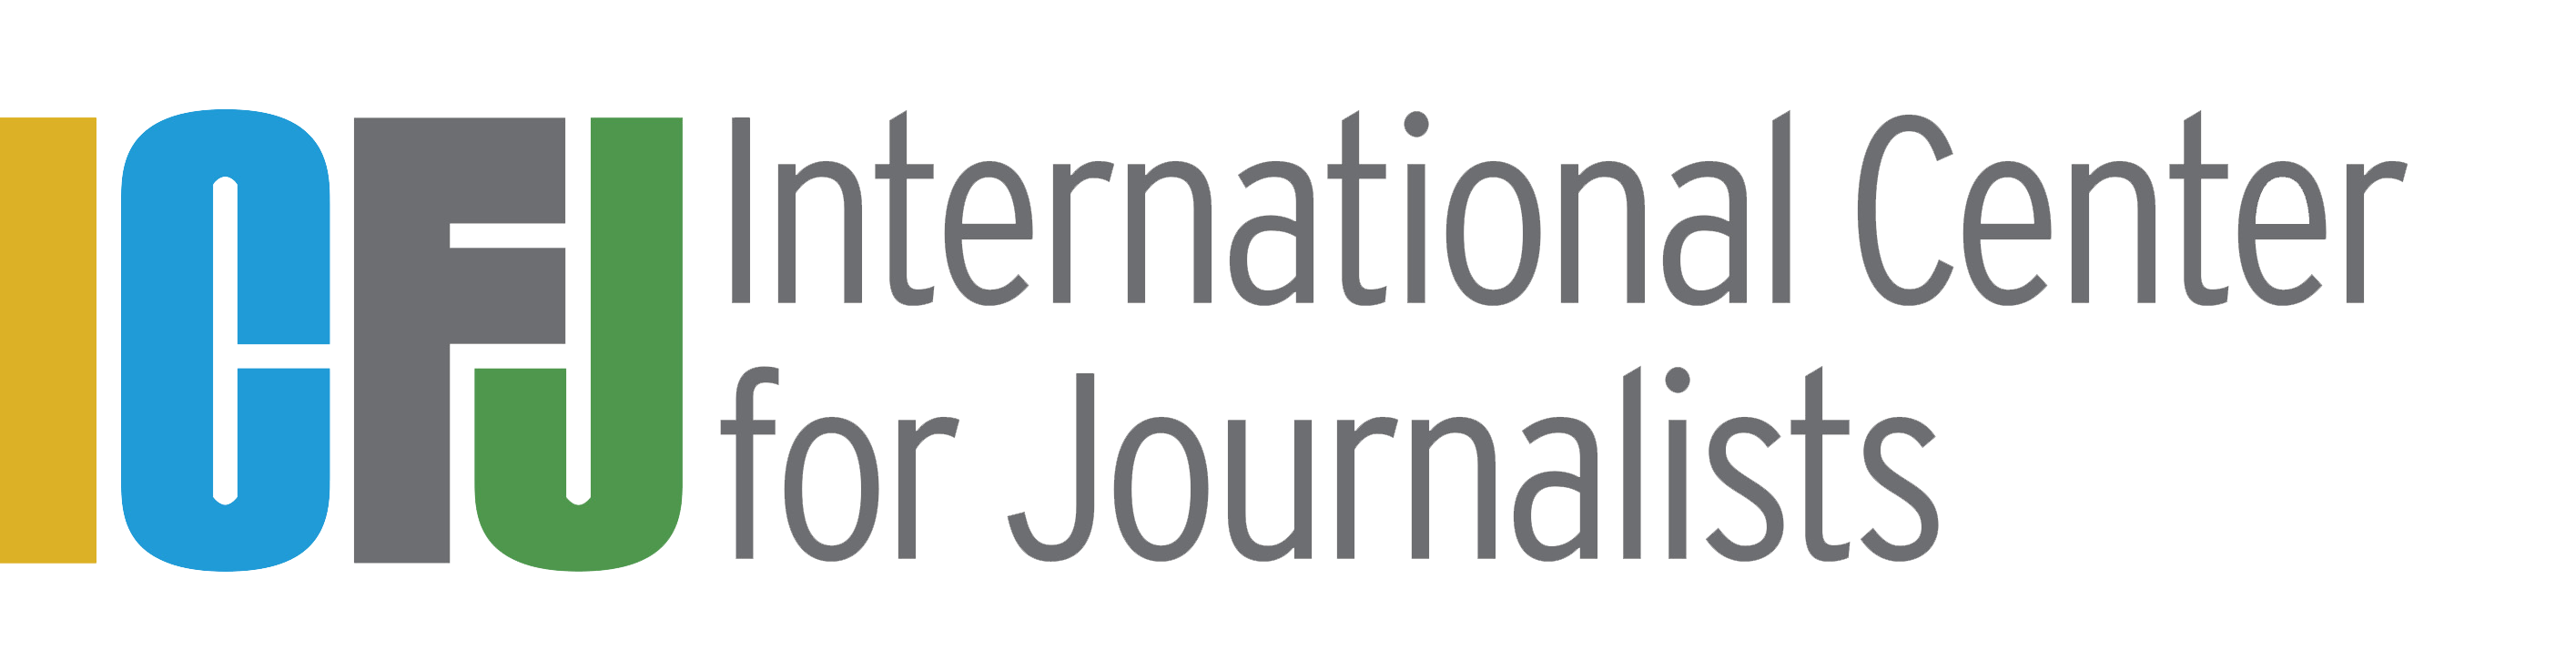 Logo de International Center for Journalists